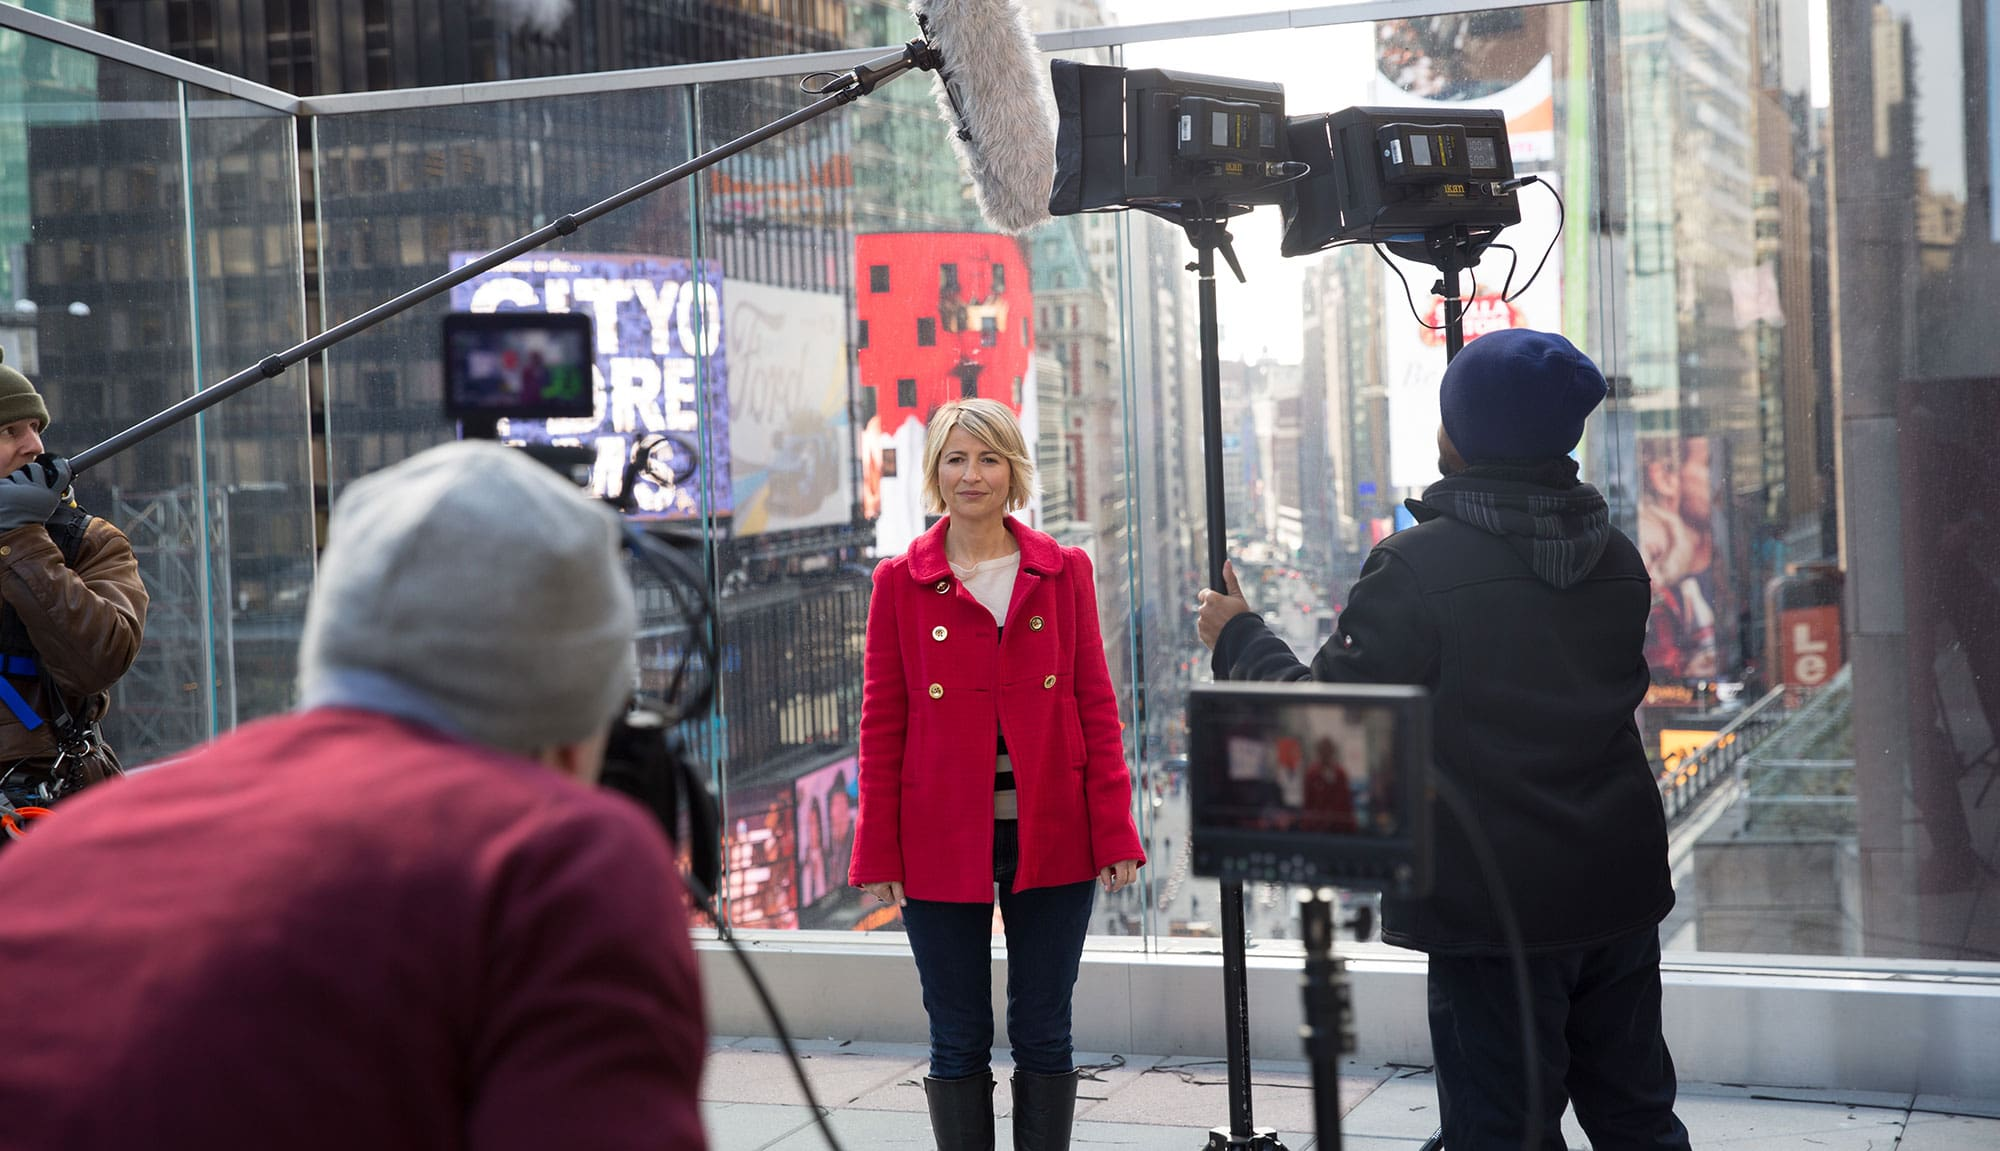 Samantha Brown Shares What It's Like To Be A Travel Television Host